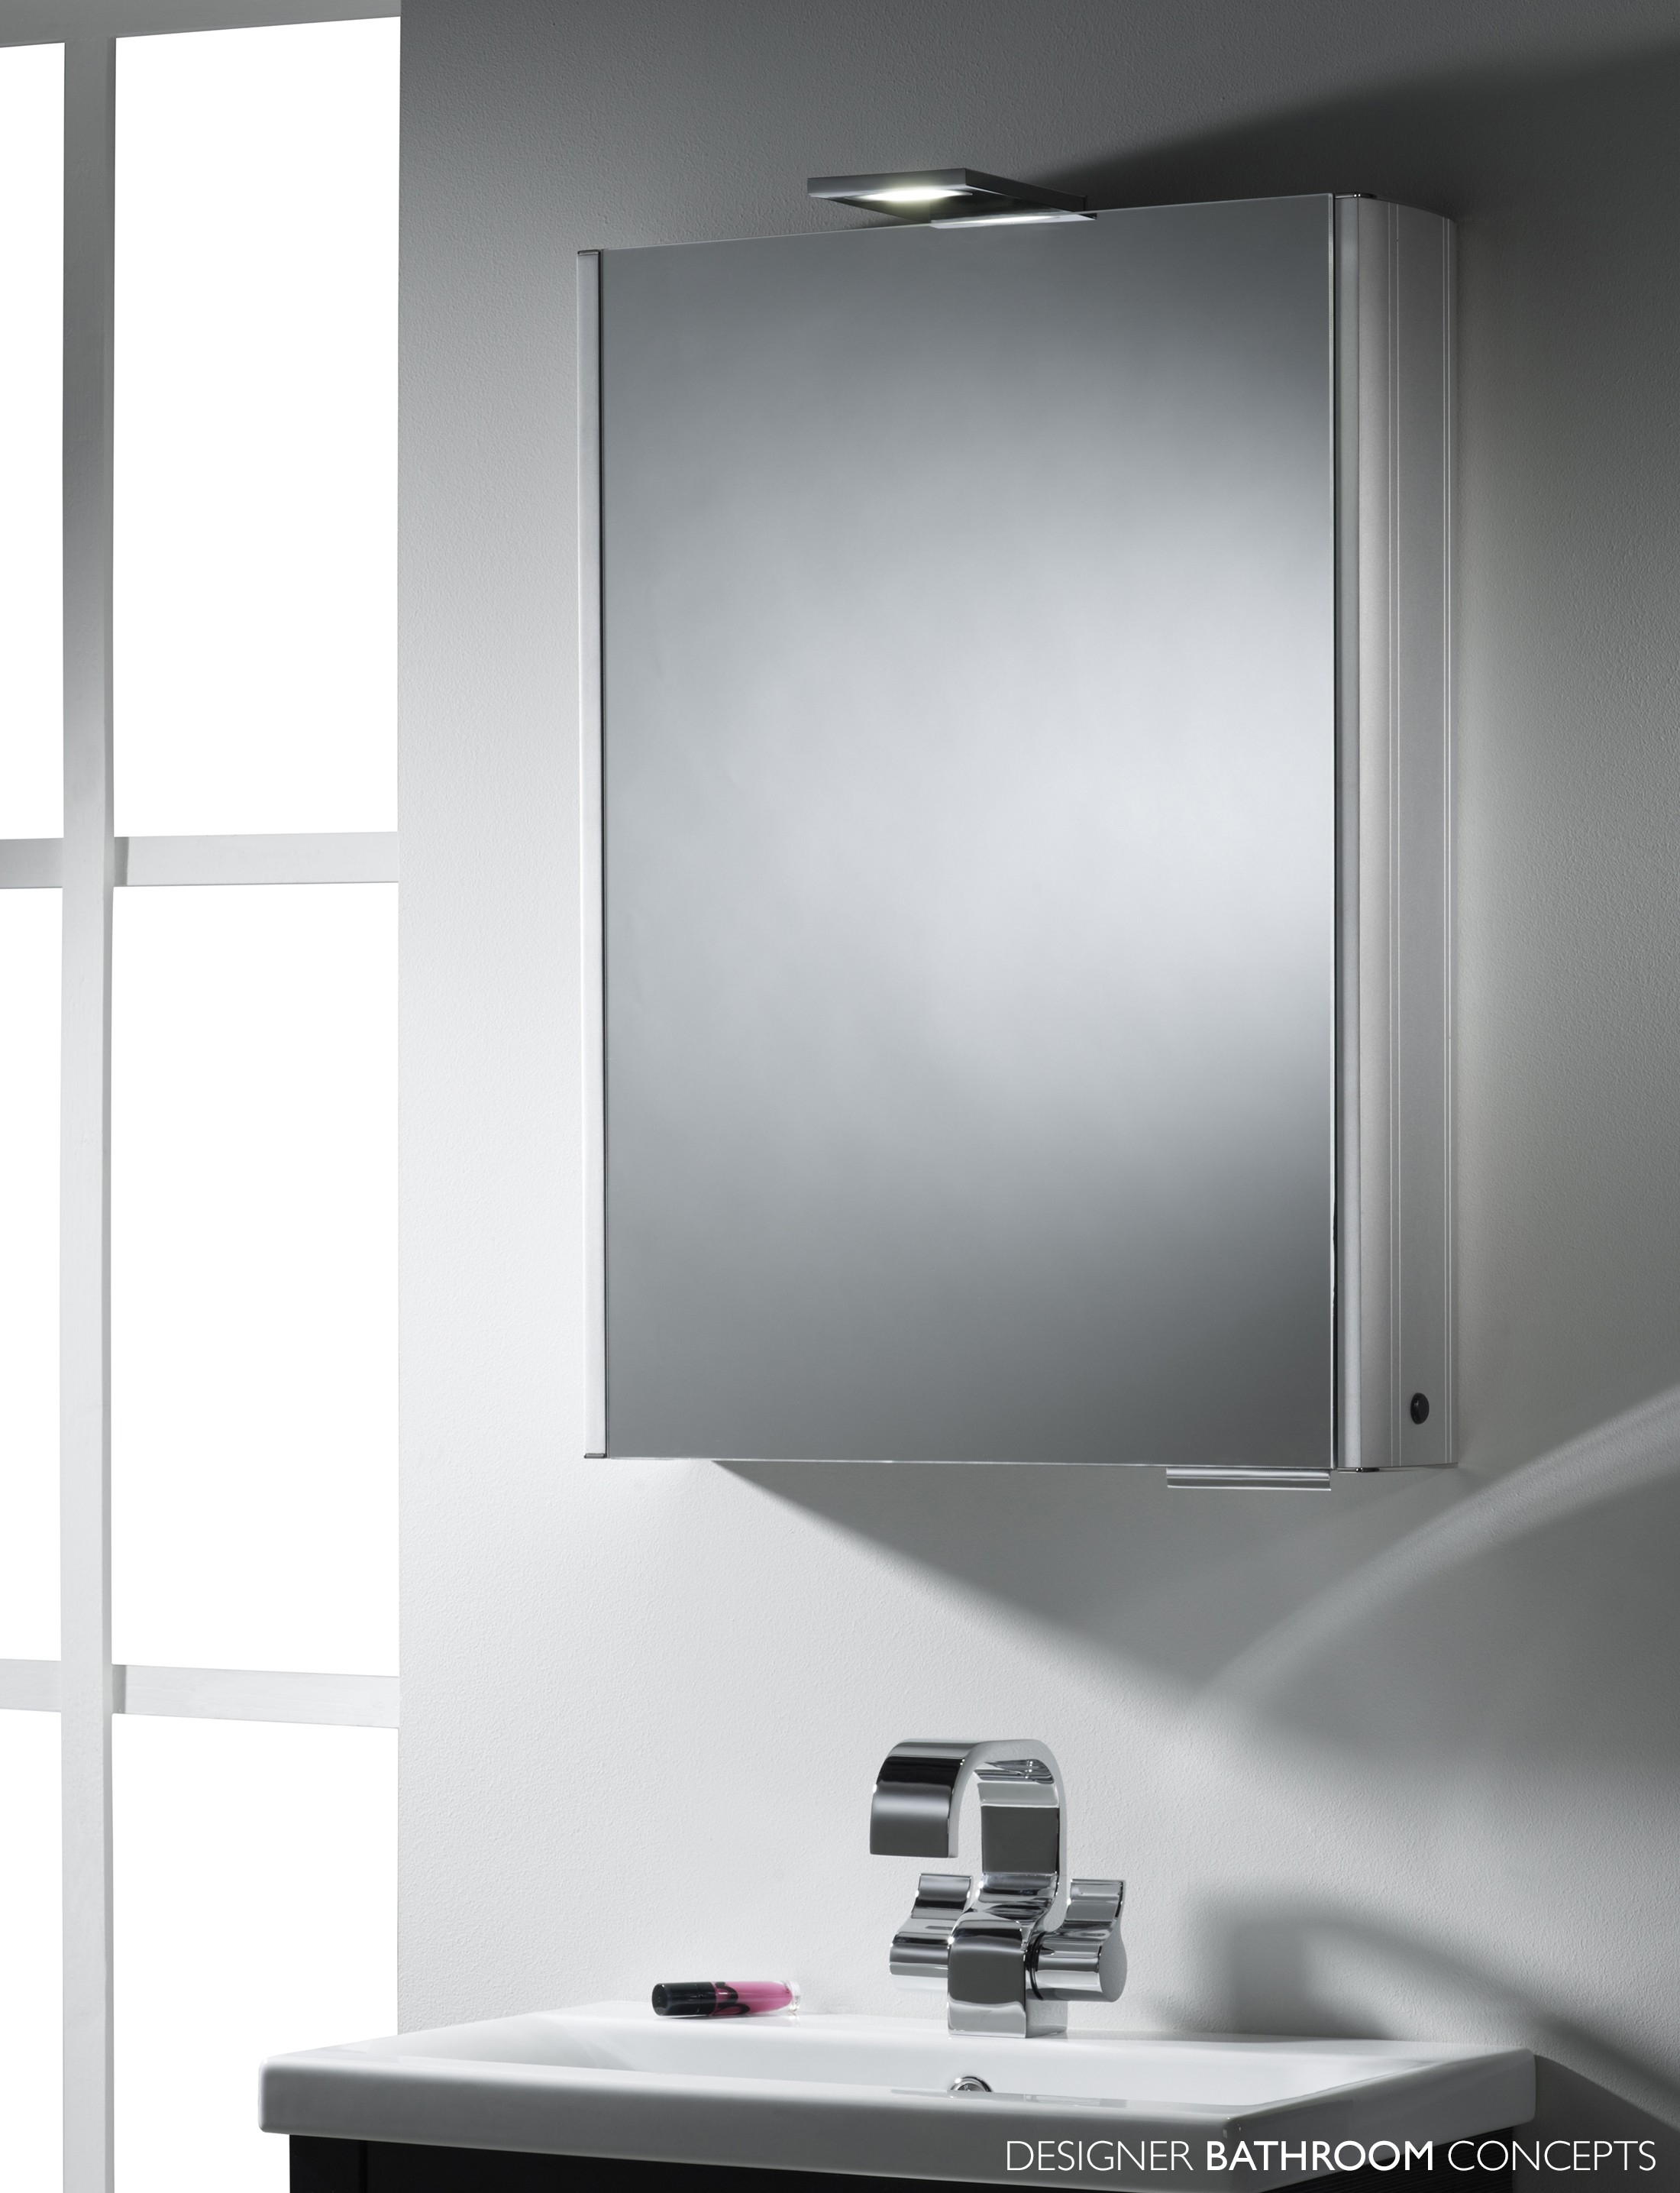 Illuminated Bathroom Mirror Cabinets With Demister